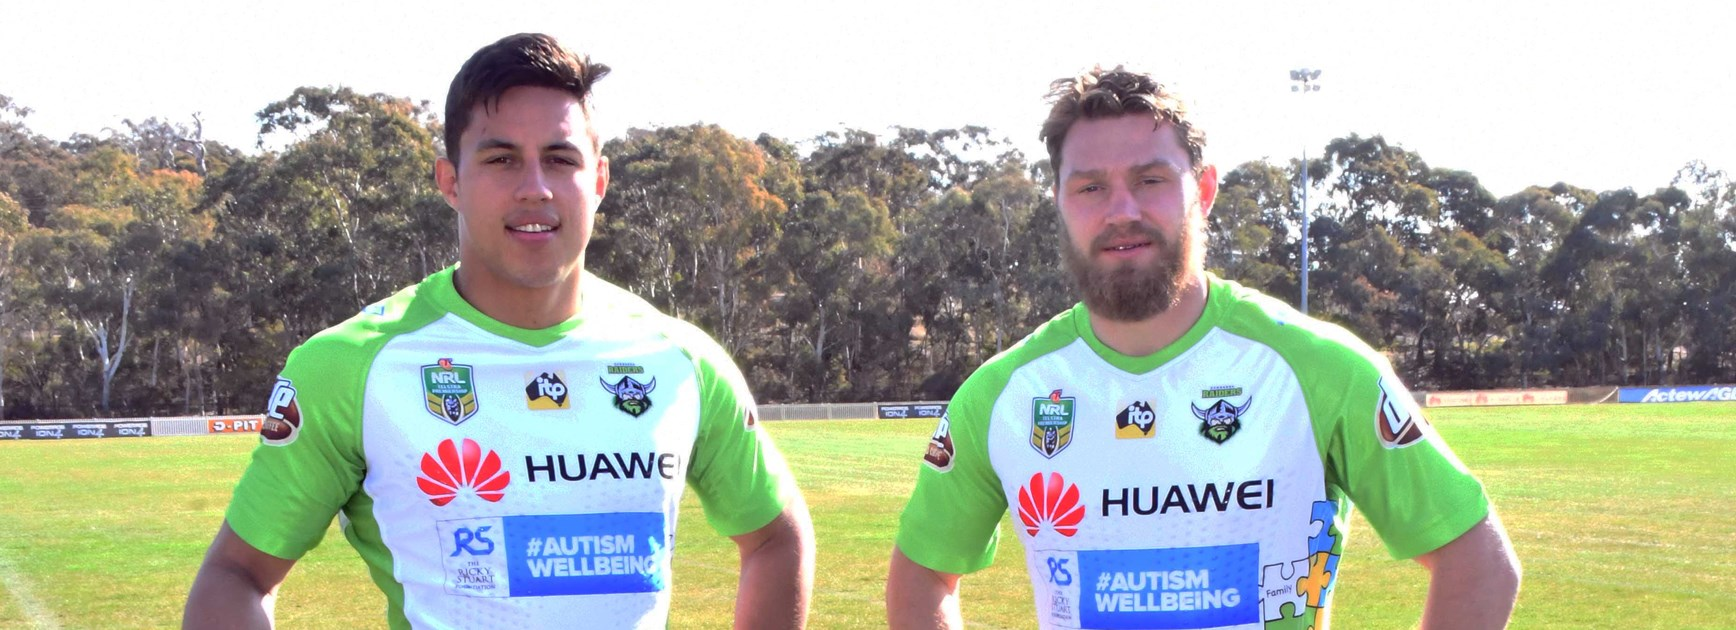 Huawei Launches 2018 Raiders Charity Jersey